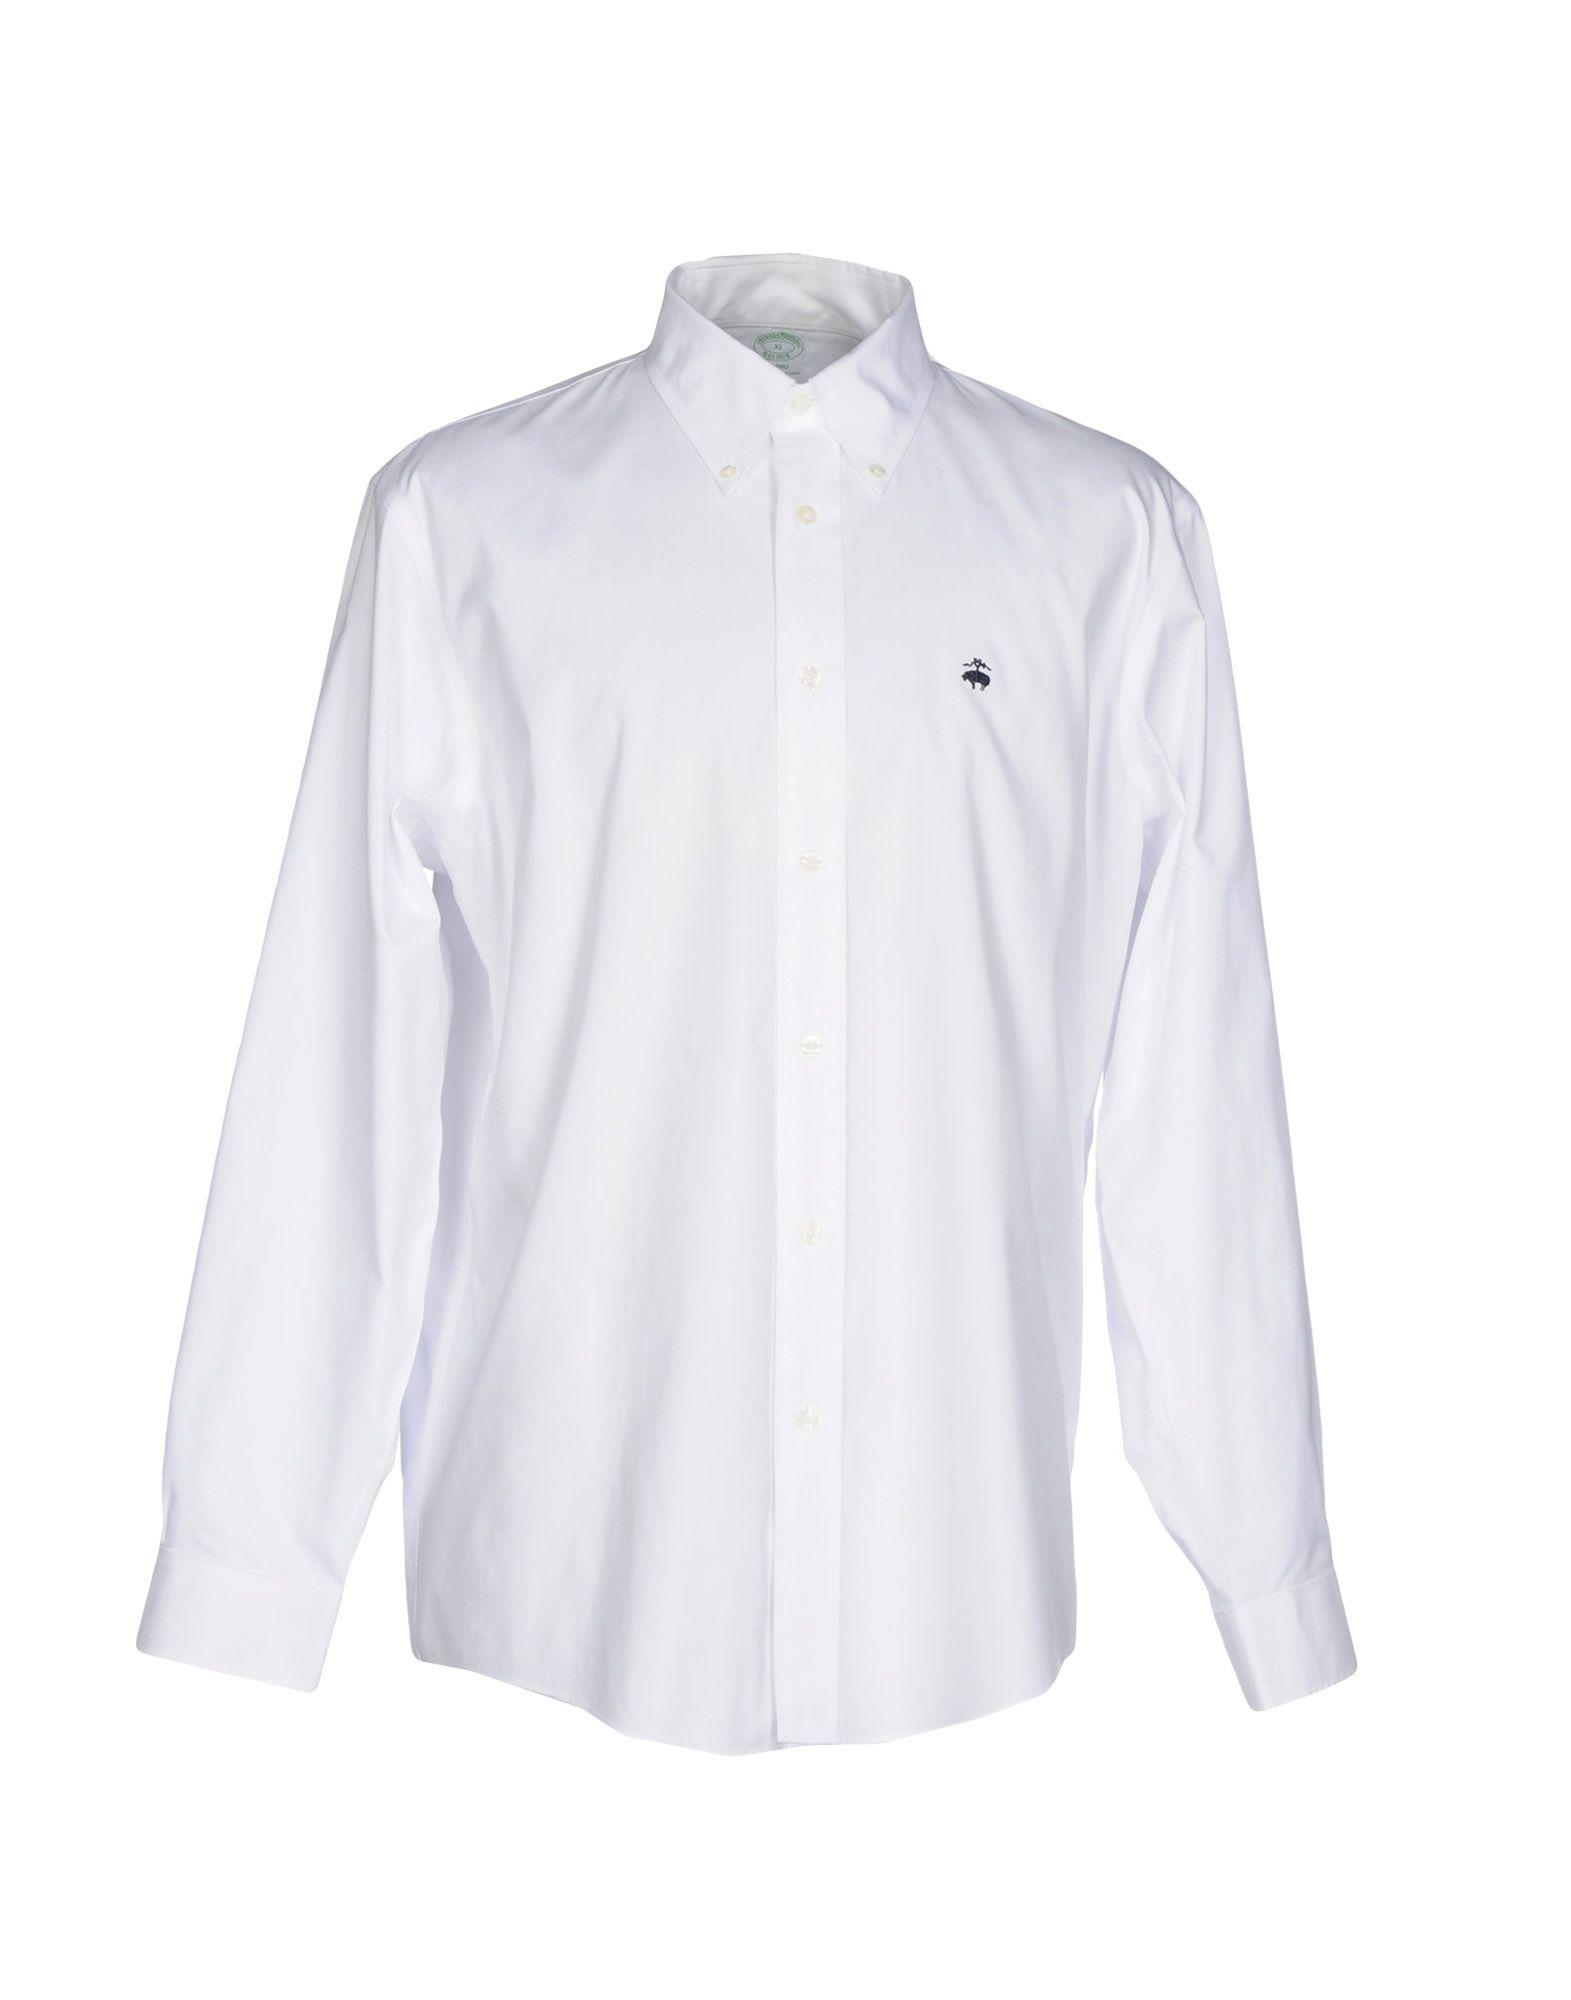 Lyst brooks brothers shirt in white for men for Brooks brothers custom shirt